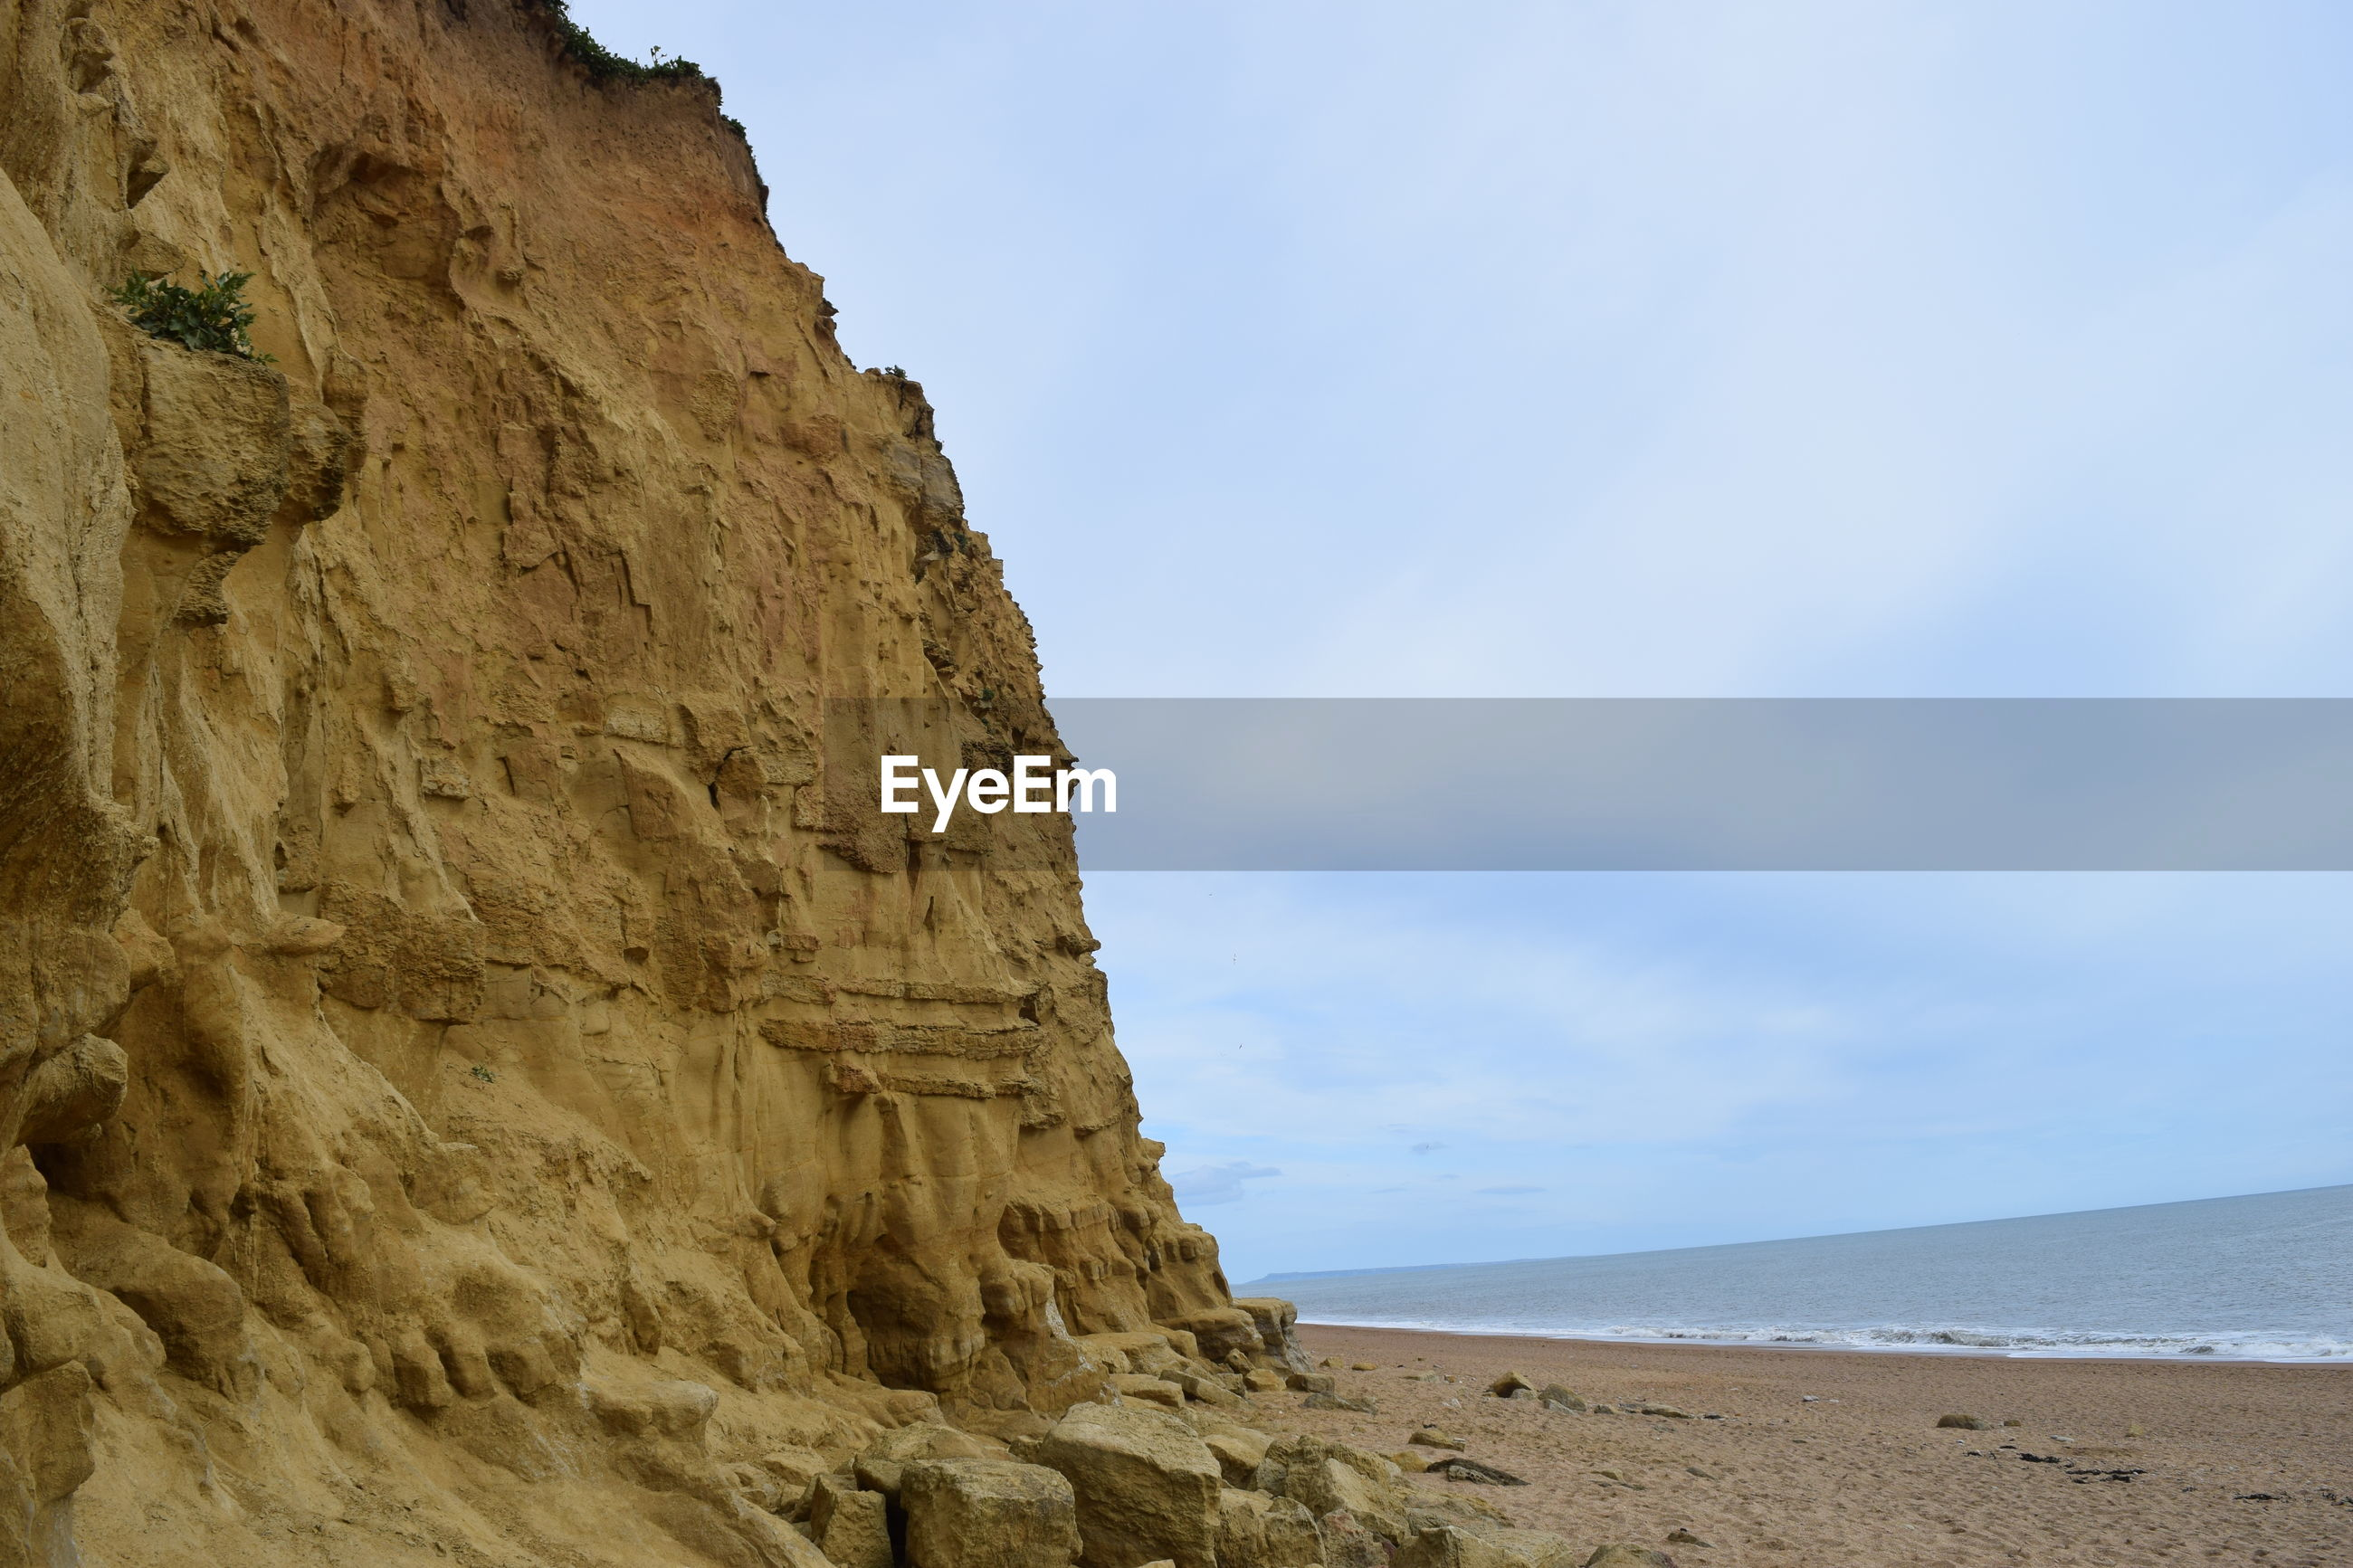 SCENIC VIEW OF ROCK FORMATIONS ON BEACH AGAINST SKY